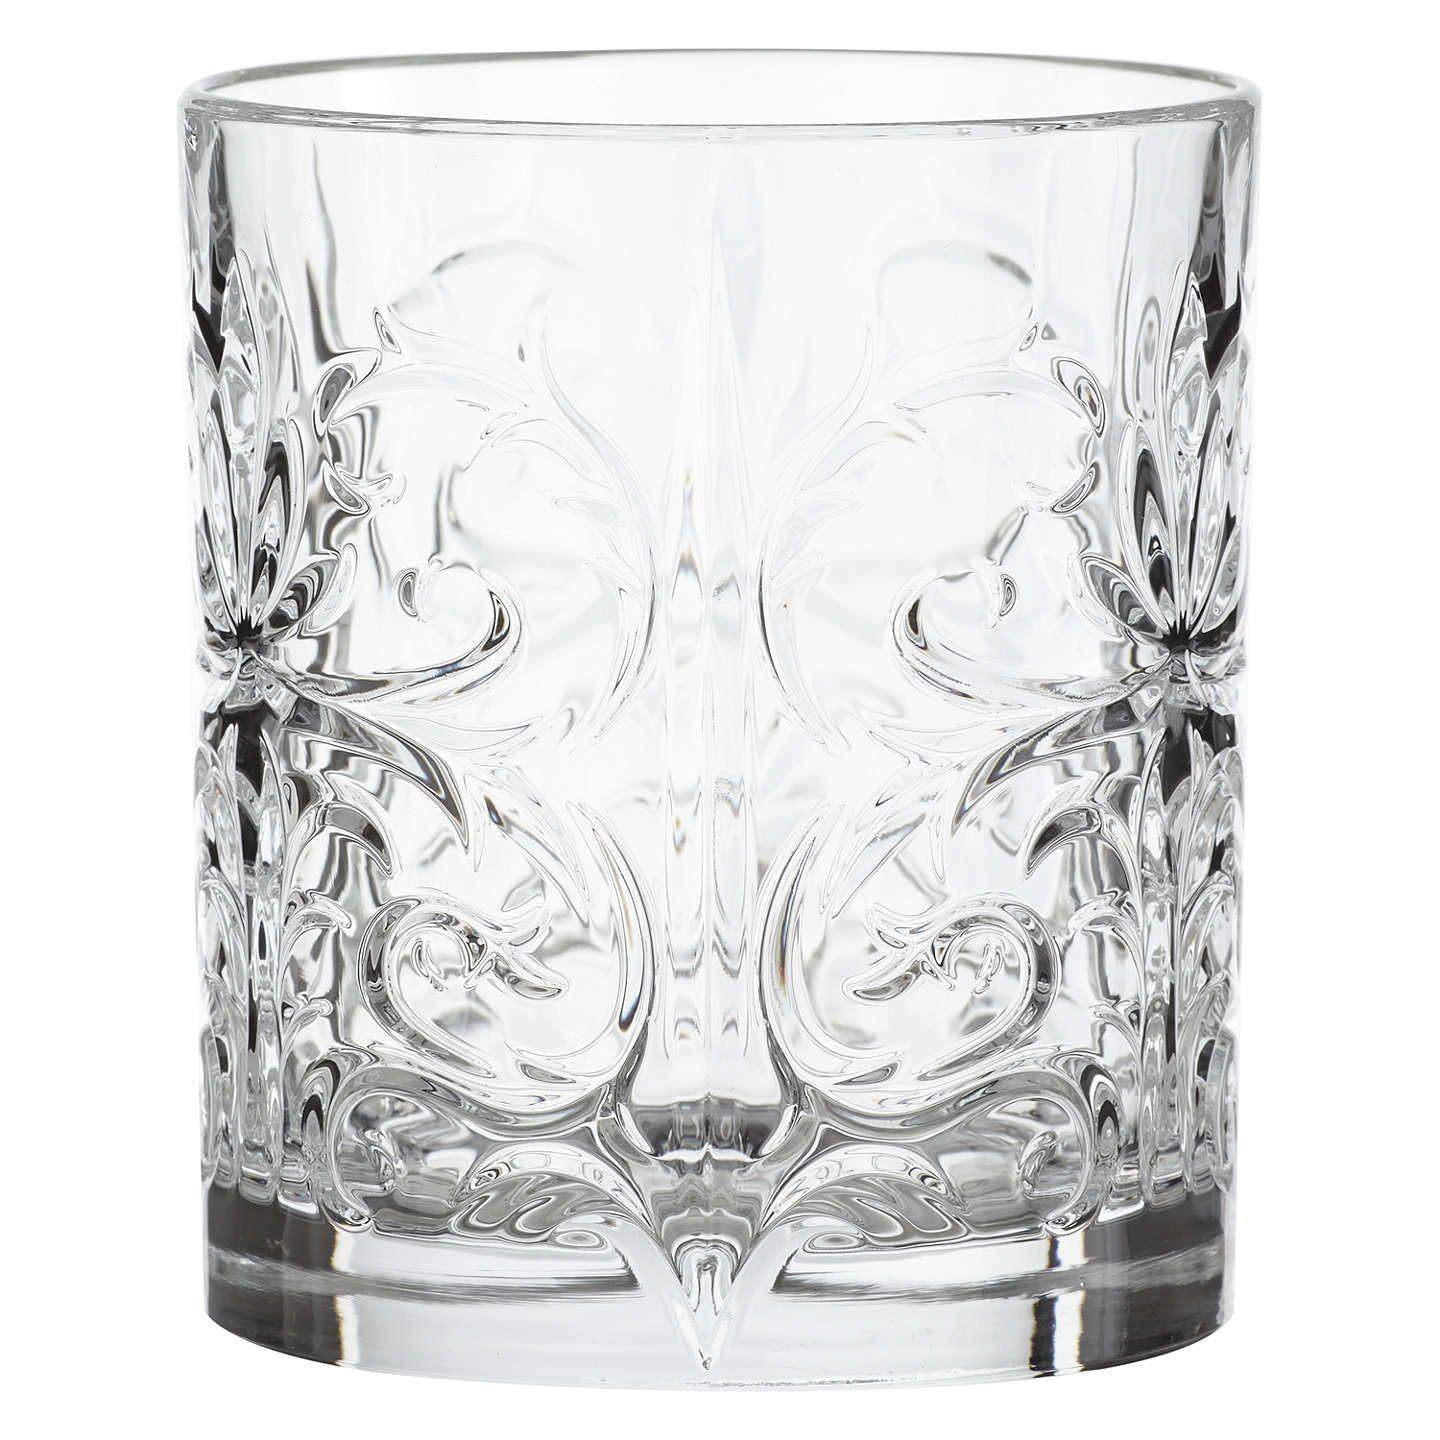 John Lewis & Partners Crystal Glass Cocktail Tumblers